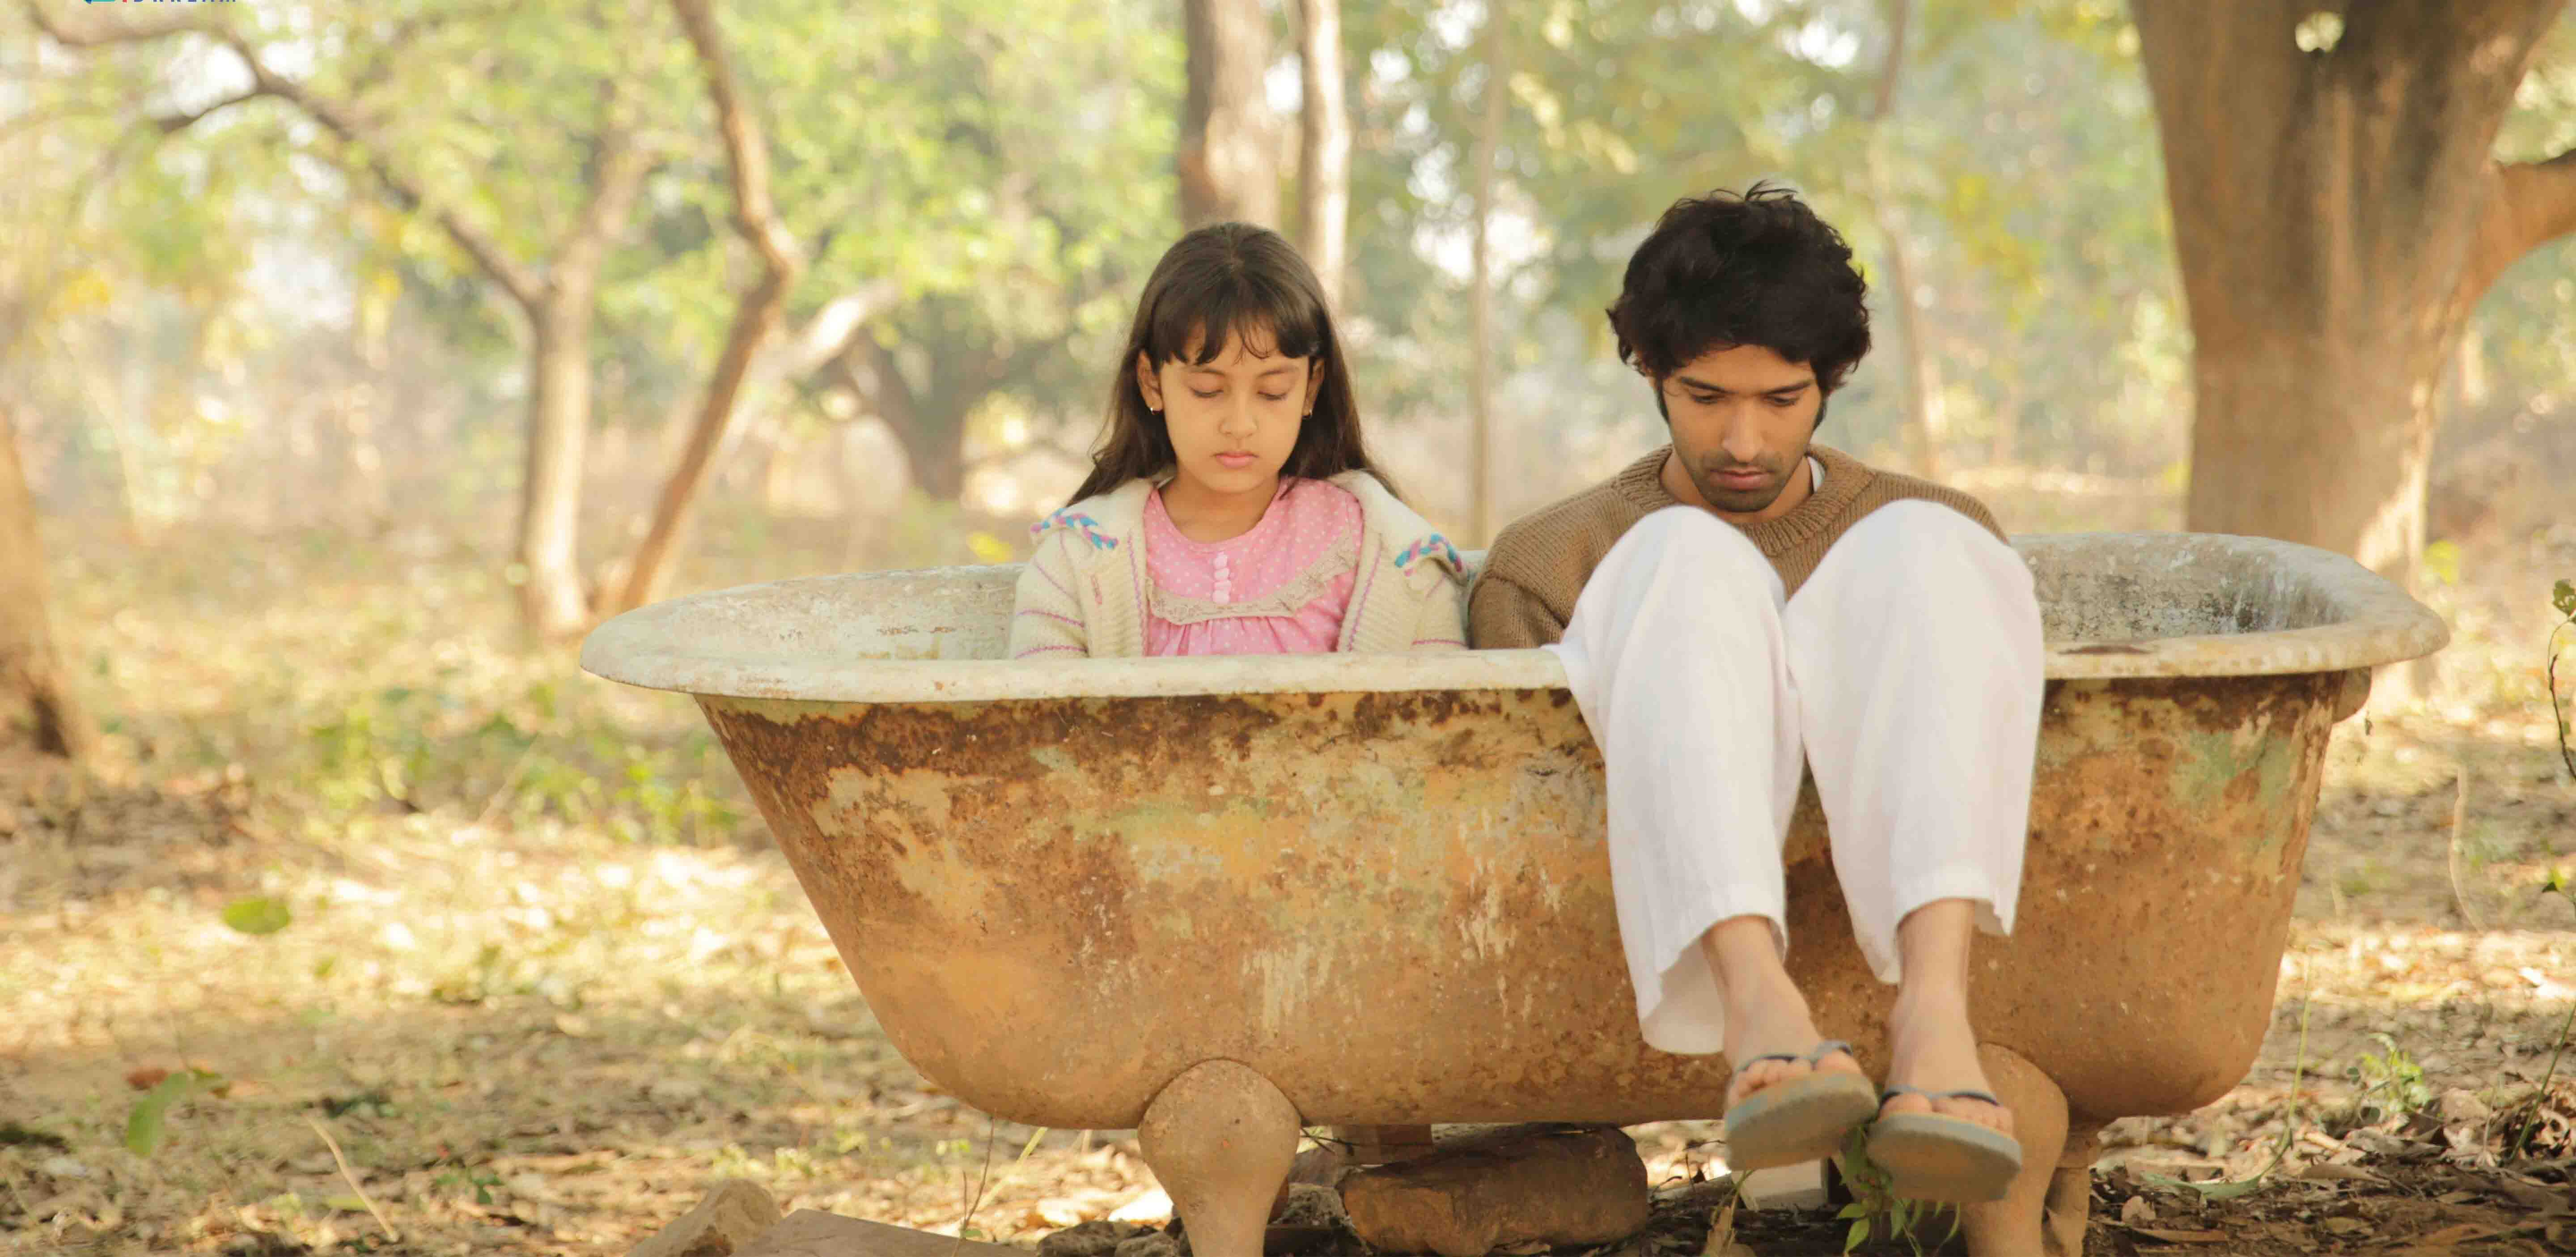 Vikrant massey upcoming movie a death in the gunj